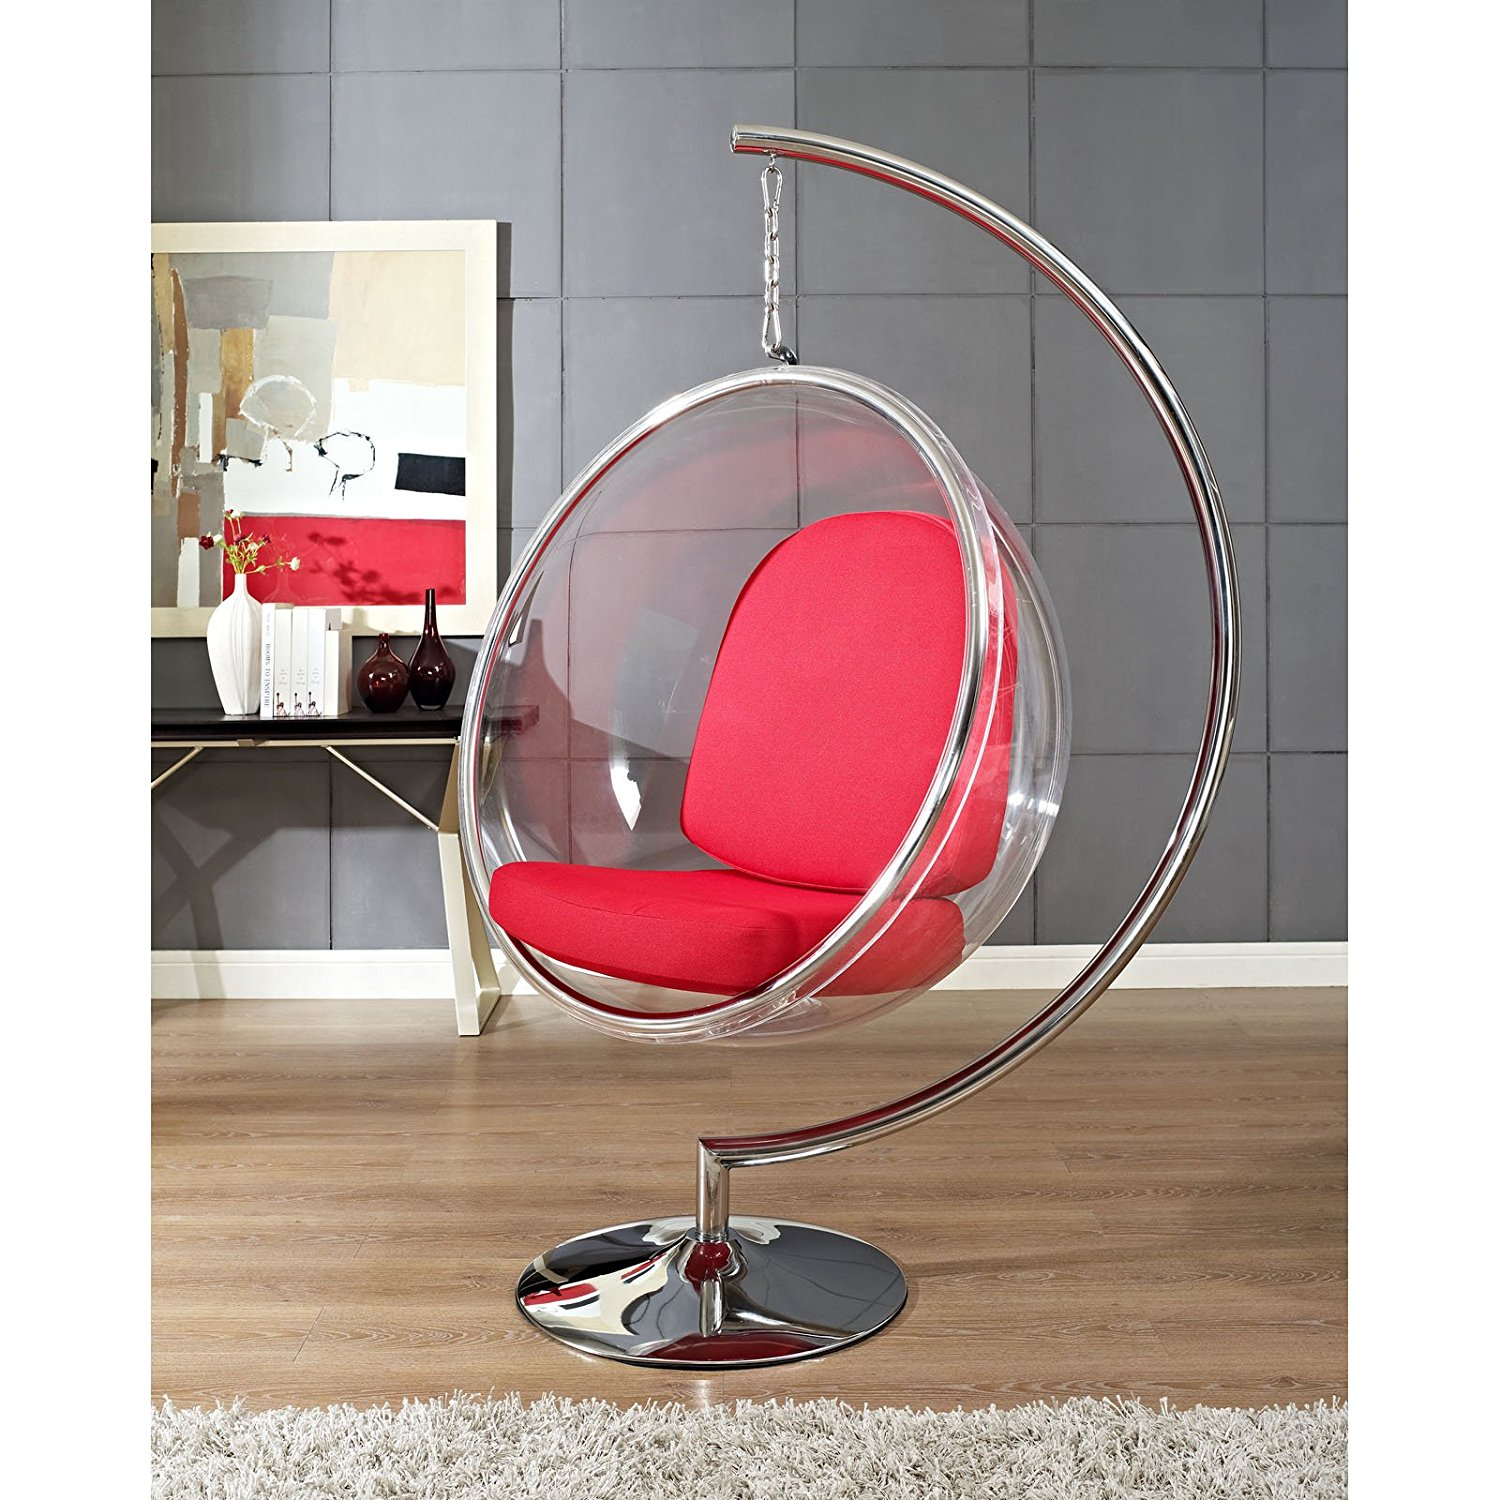 Ihausexpress Bubble Chair With Metal Stand